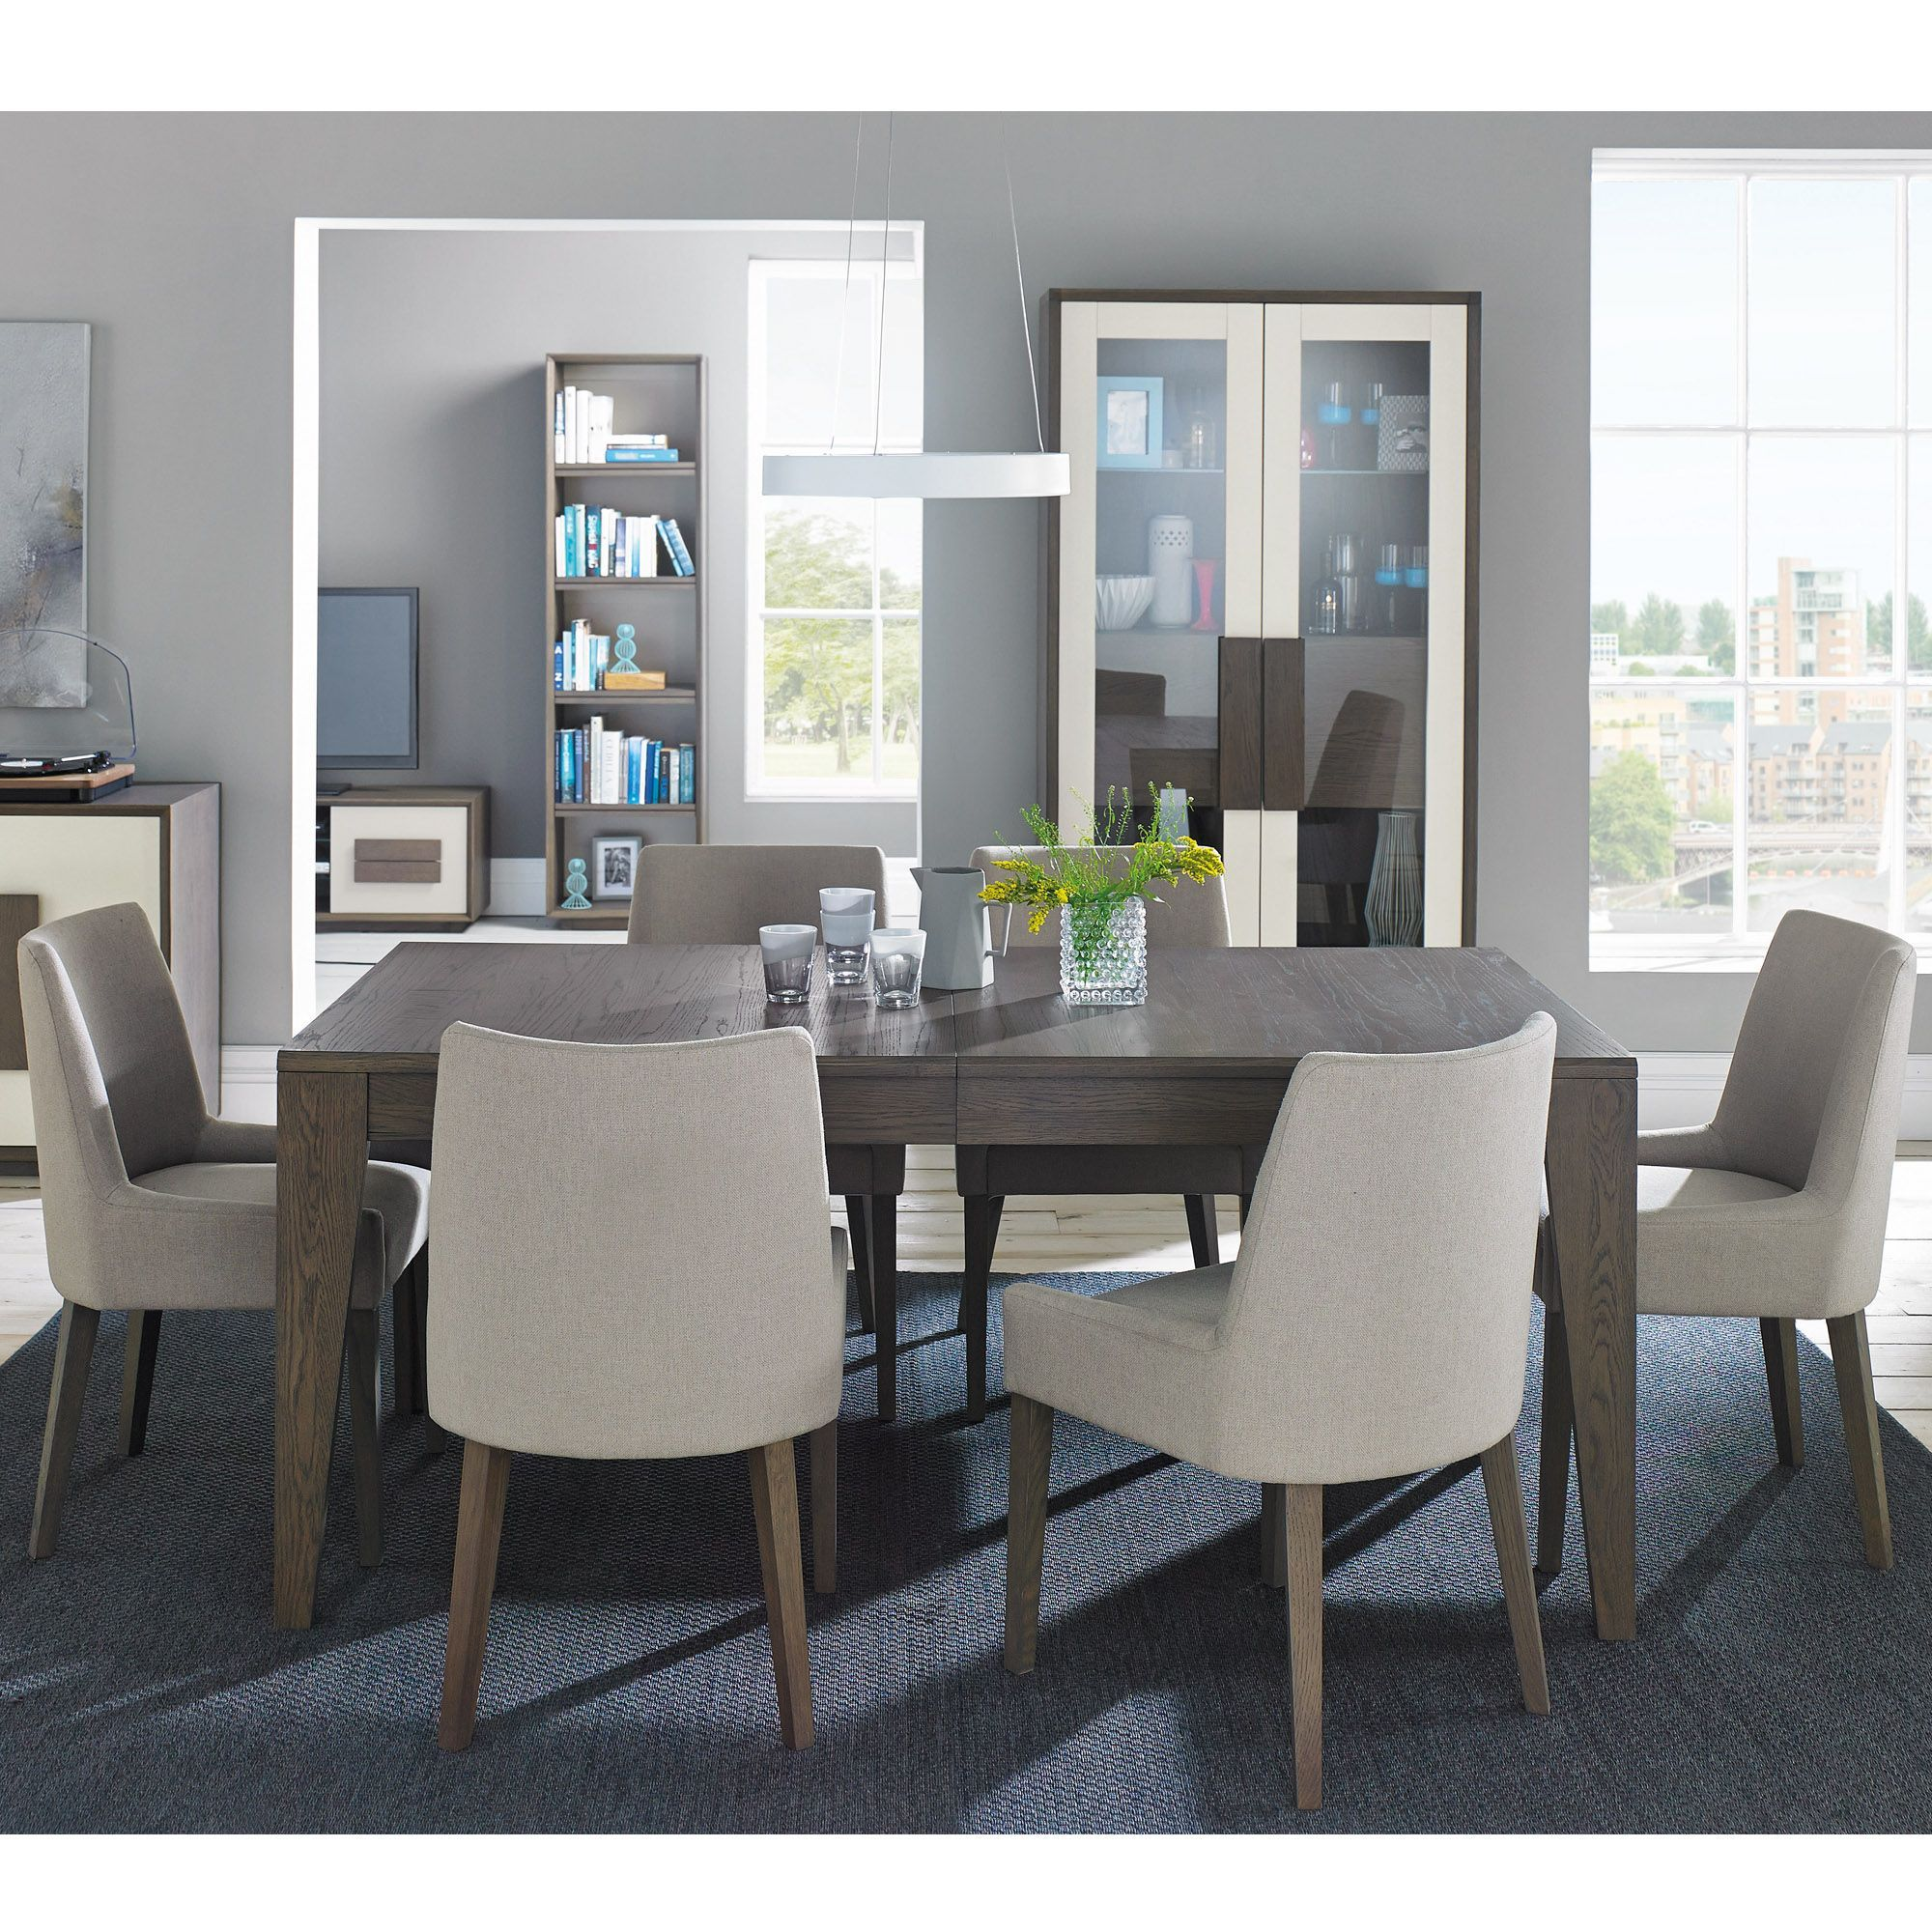 Cookes Collection Urban Weathered Oak 68 Extending Dining Table Gorgeous Extended Dining Room Tables Design Inspiration